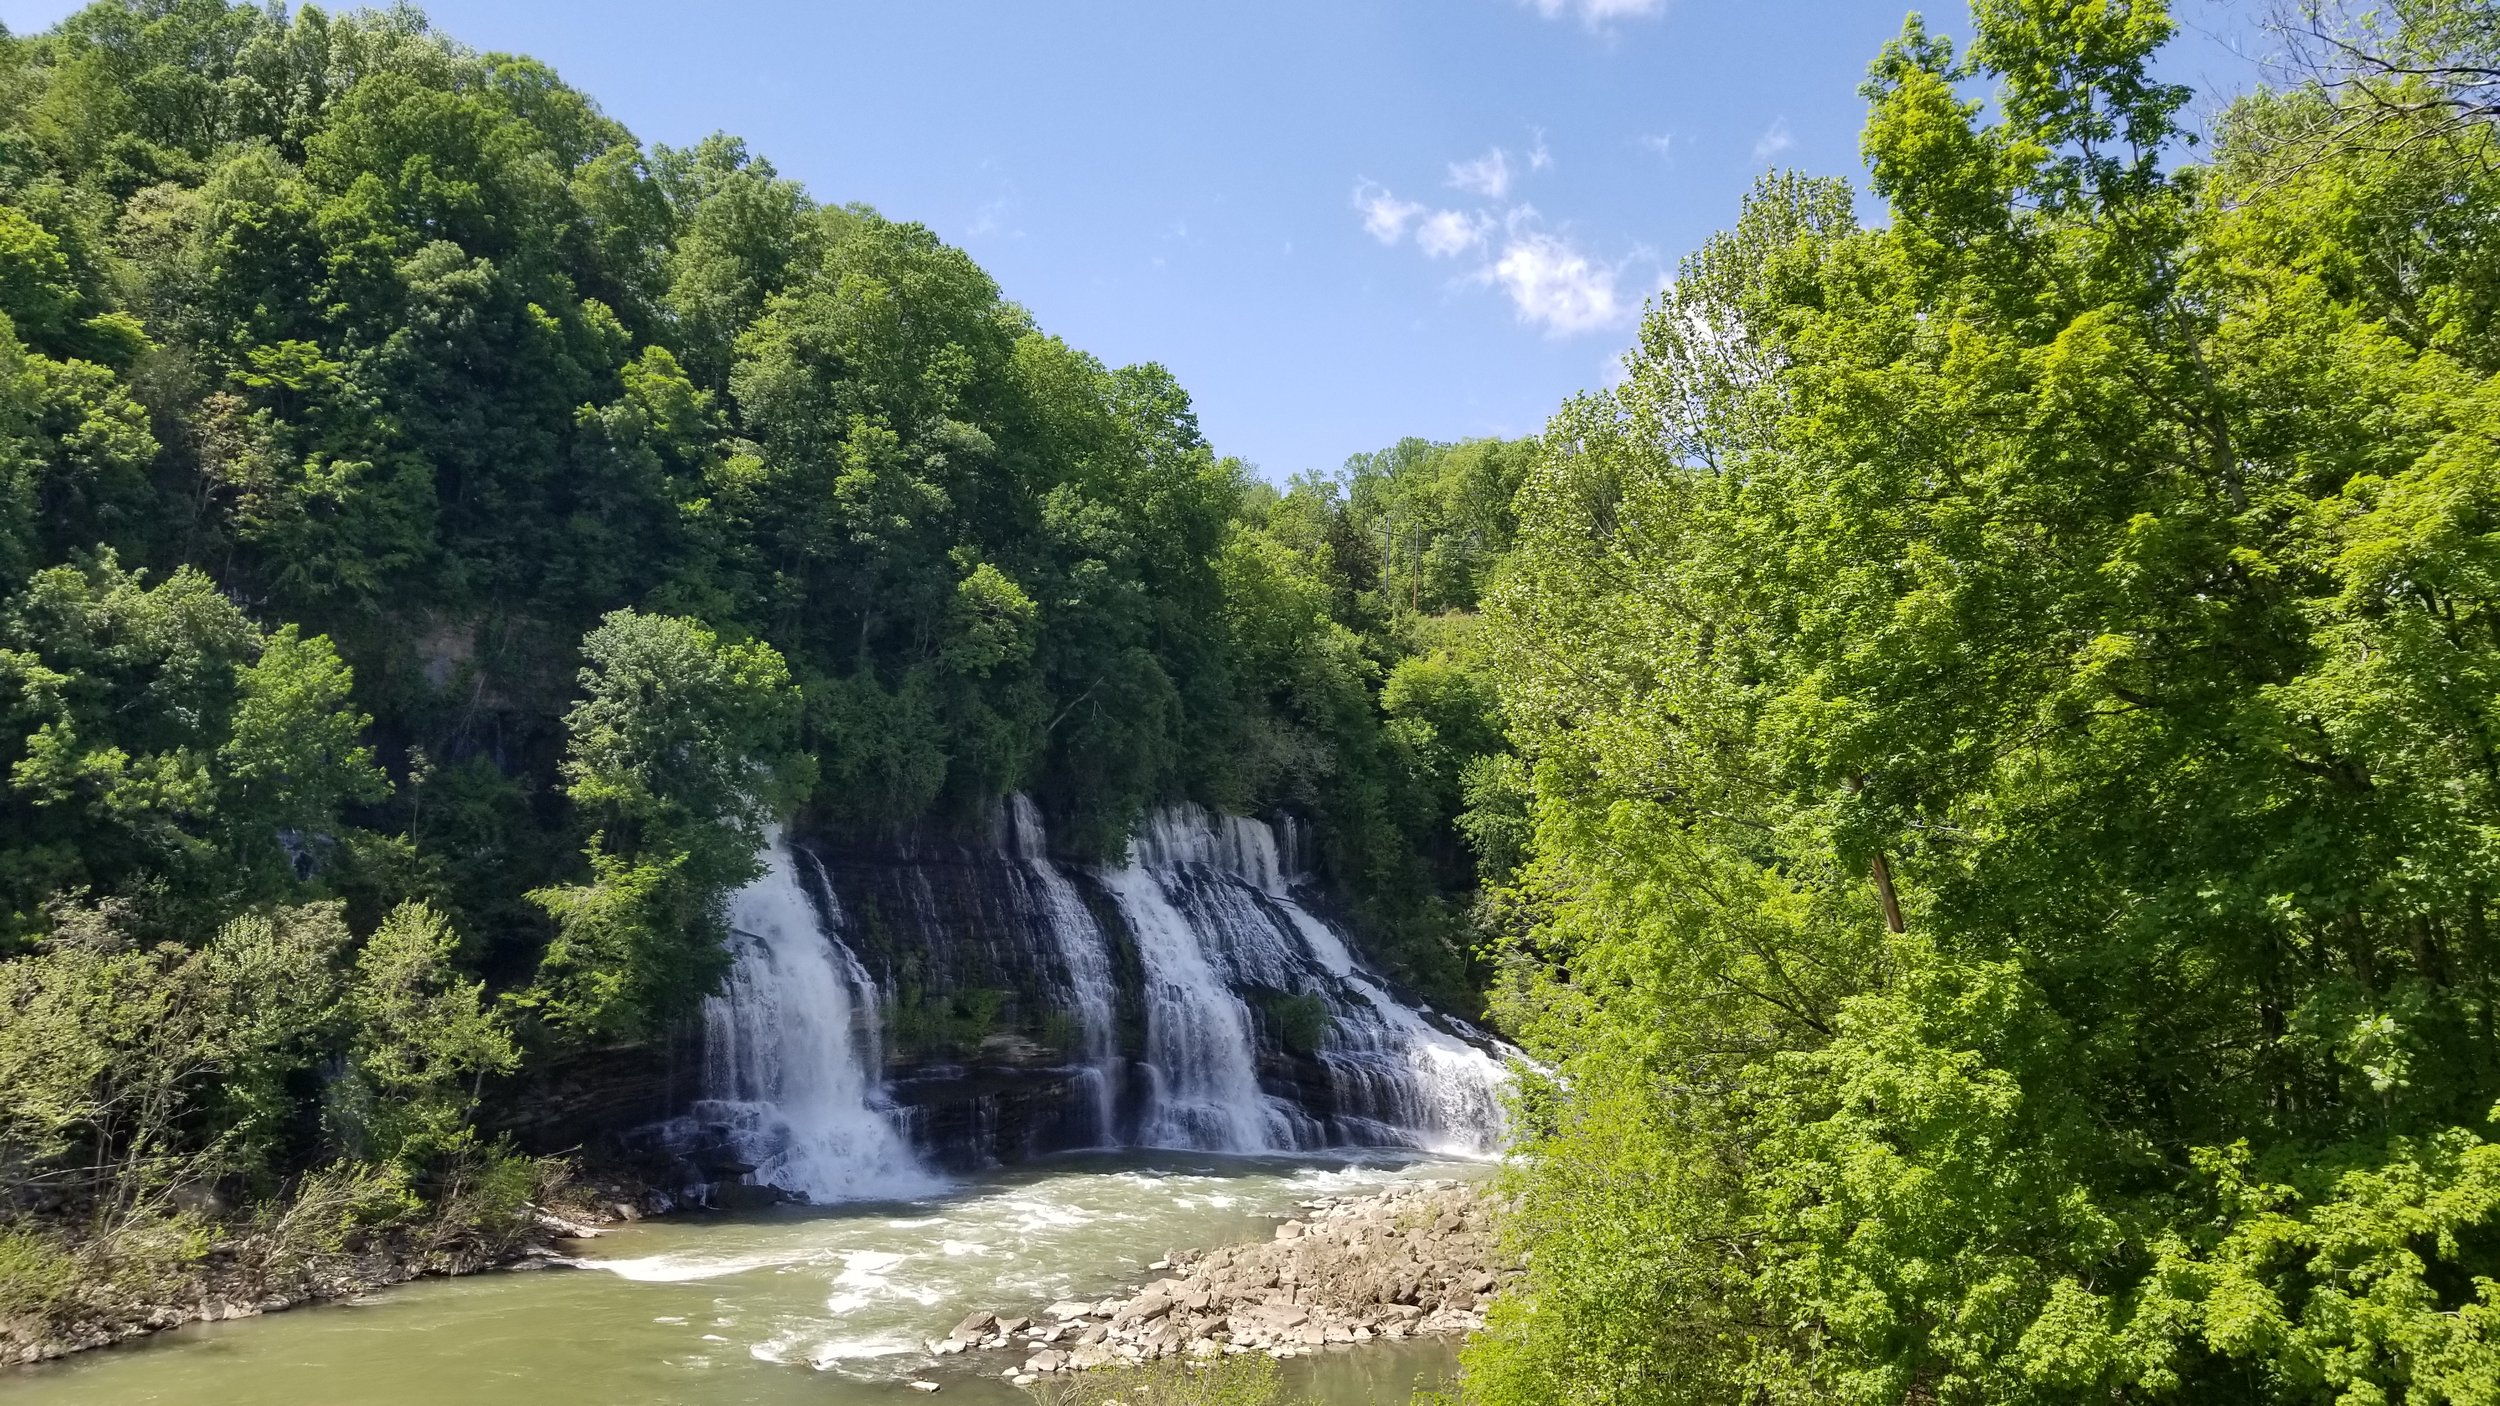 Twin Falls at Rock Island State Park are easily viewed either from the parking lot at the Powerhouse or via a trail that runs along the river below the parking lot.